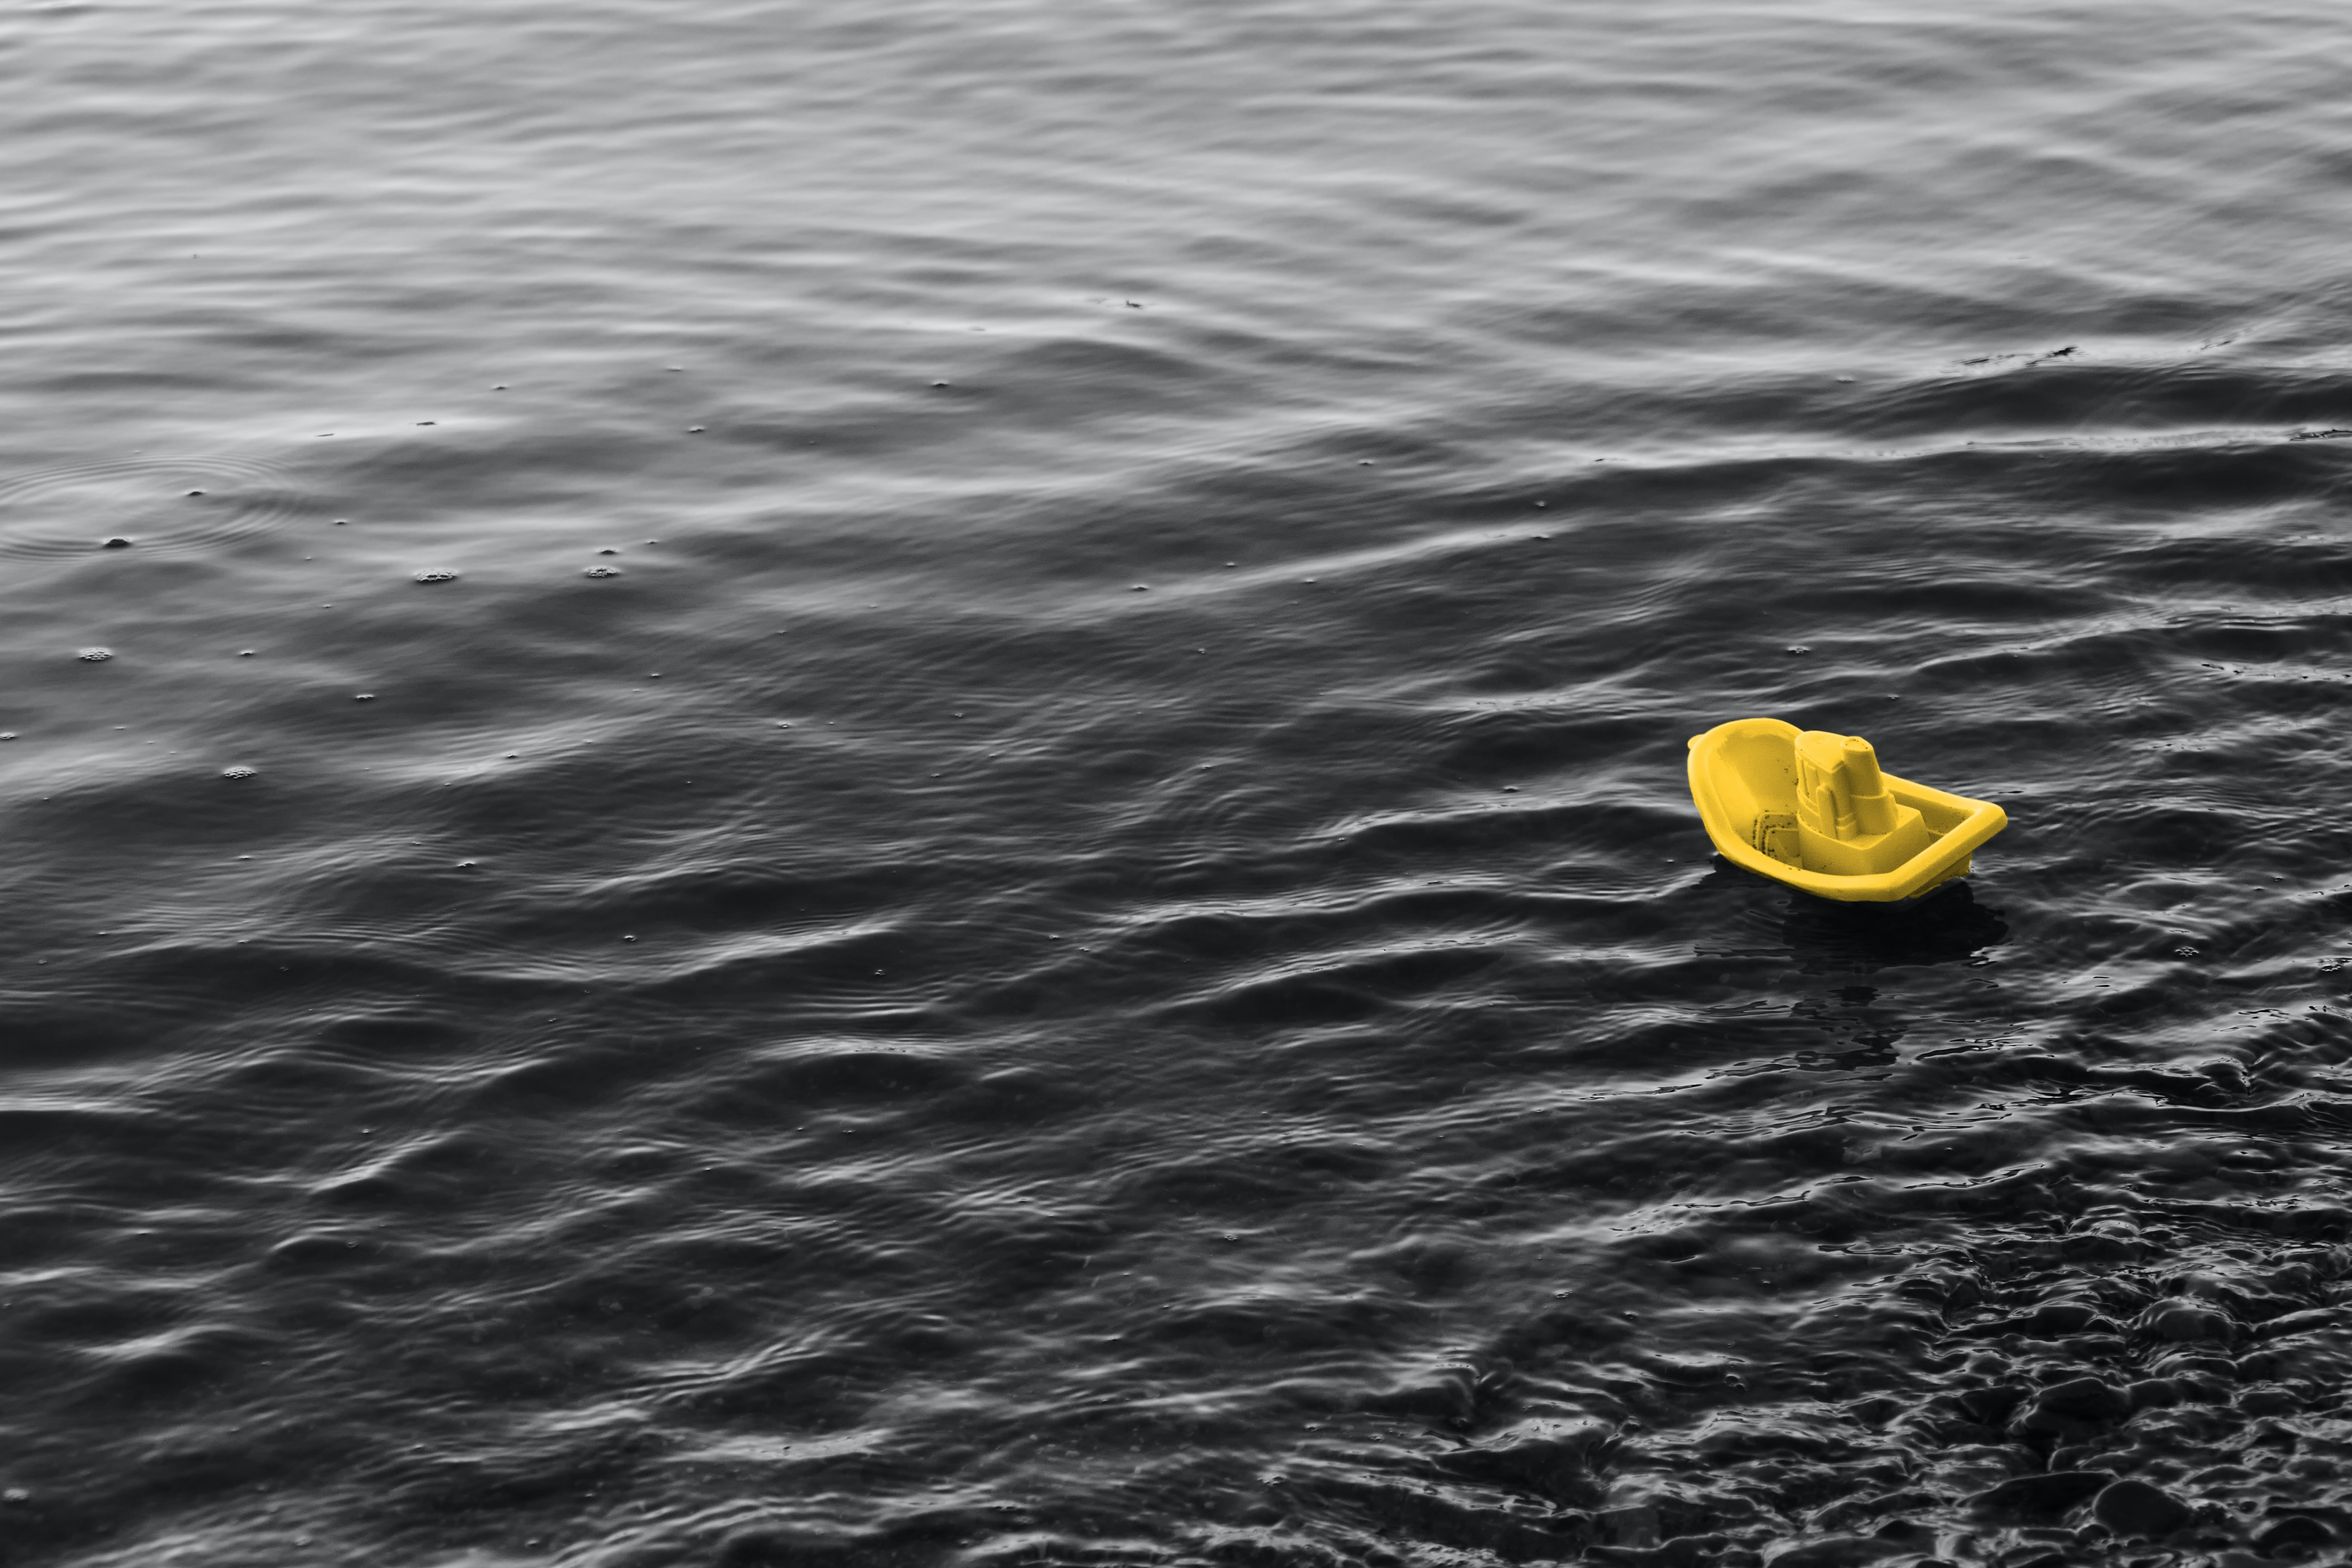 yellow plastic ship toy floating on water